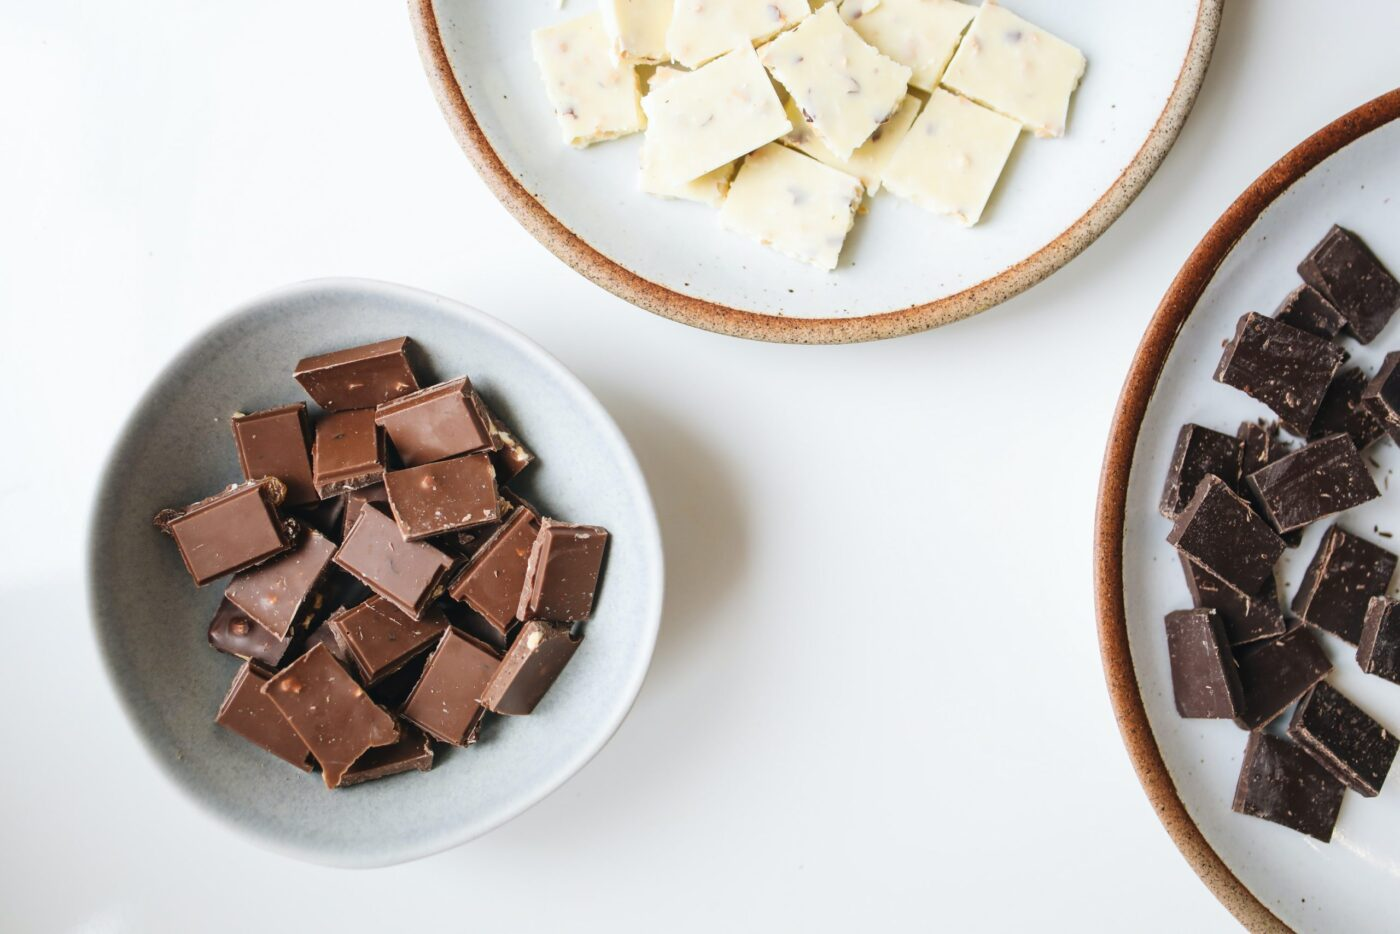 How to become the ultimate chocolate connoisseur